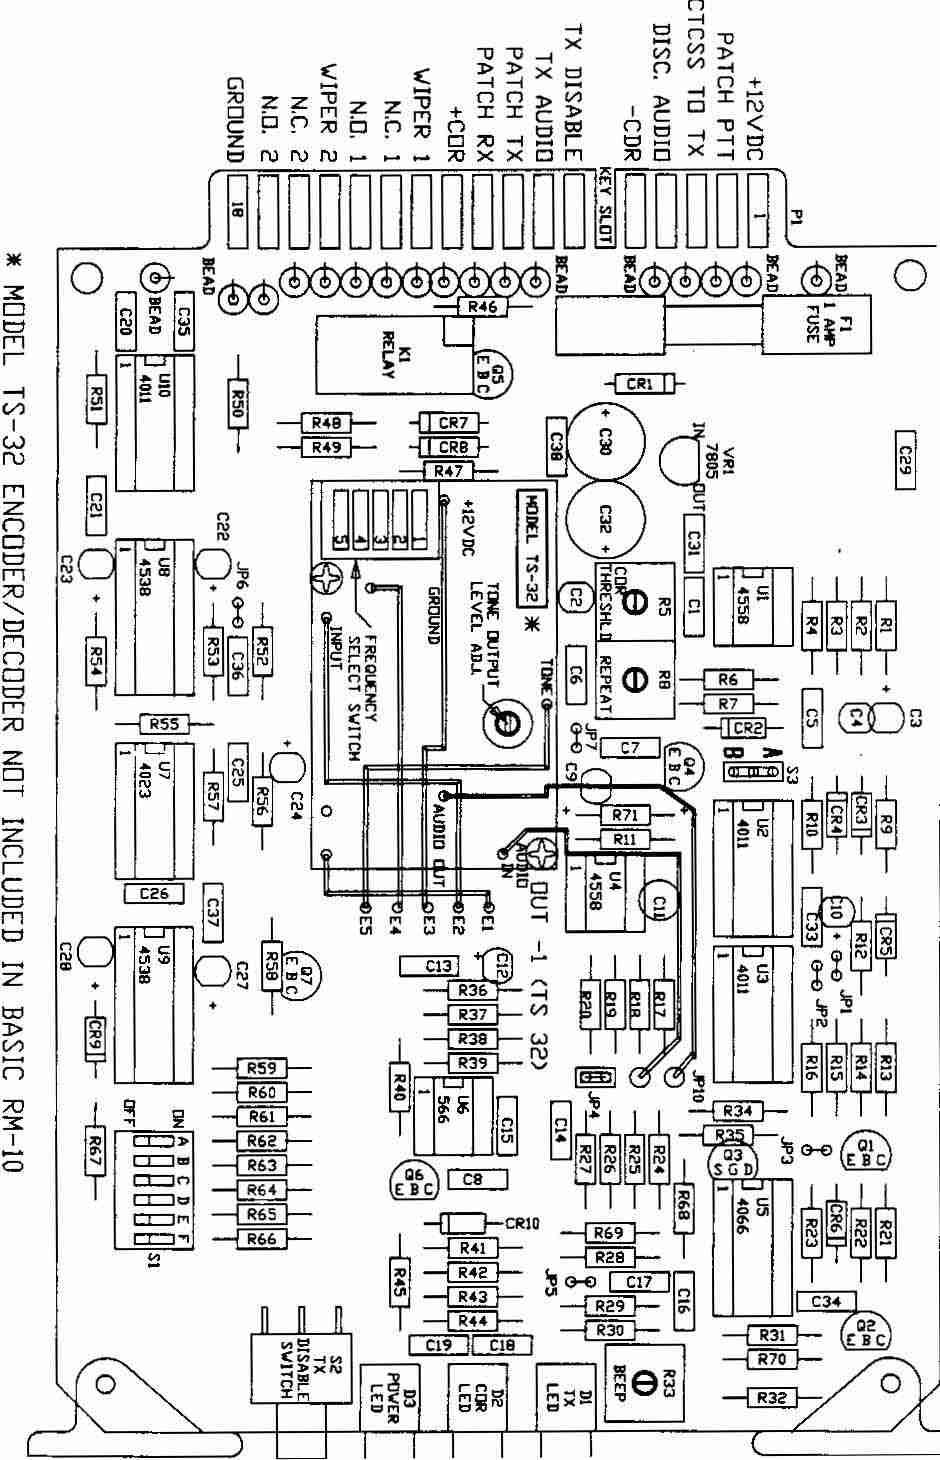 Llv Wiring Diagram - Wiring Diagram General